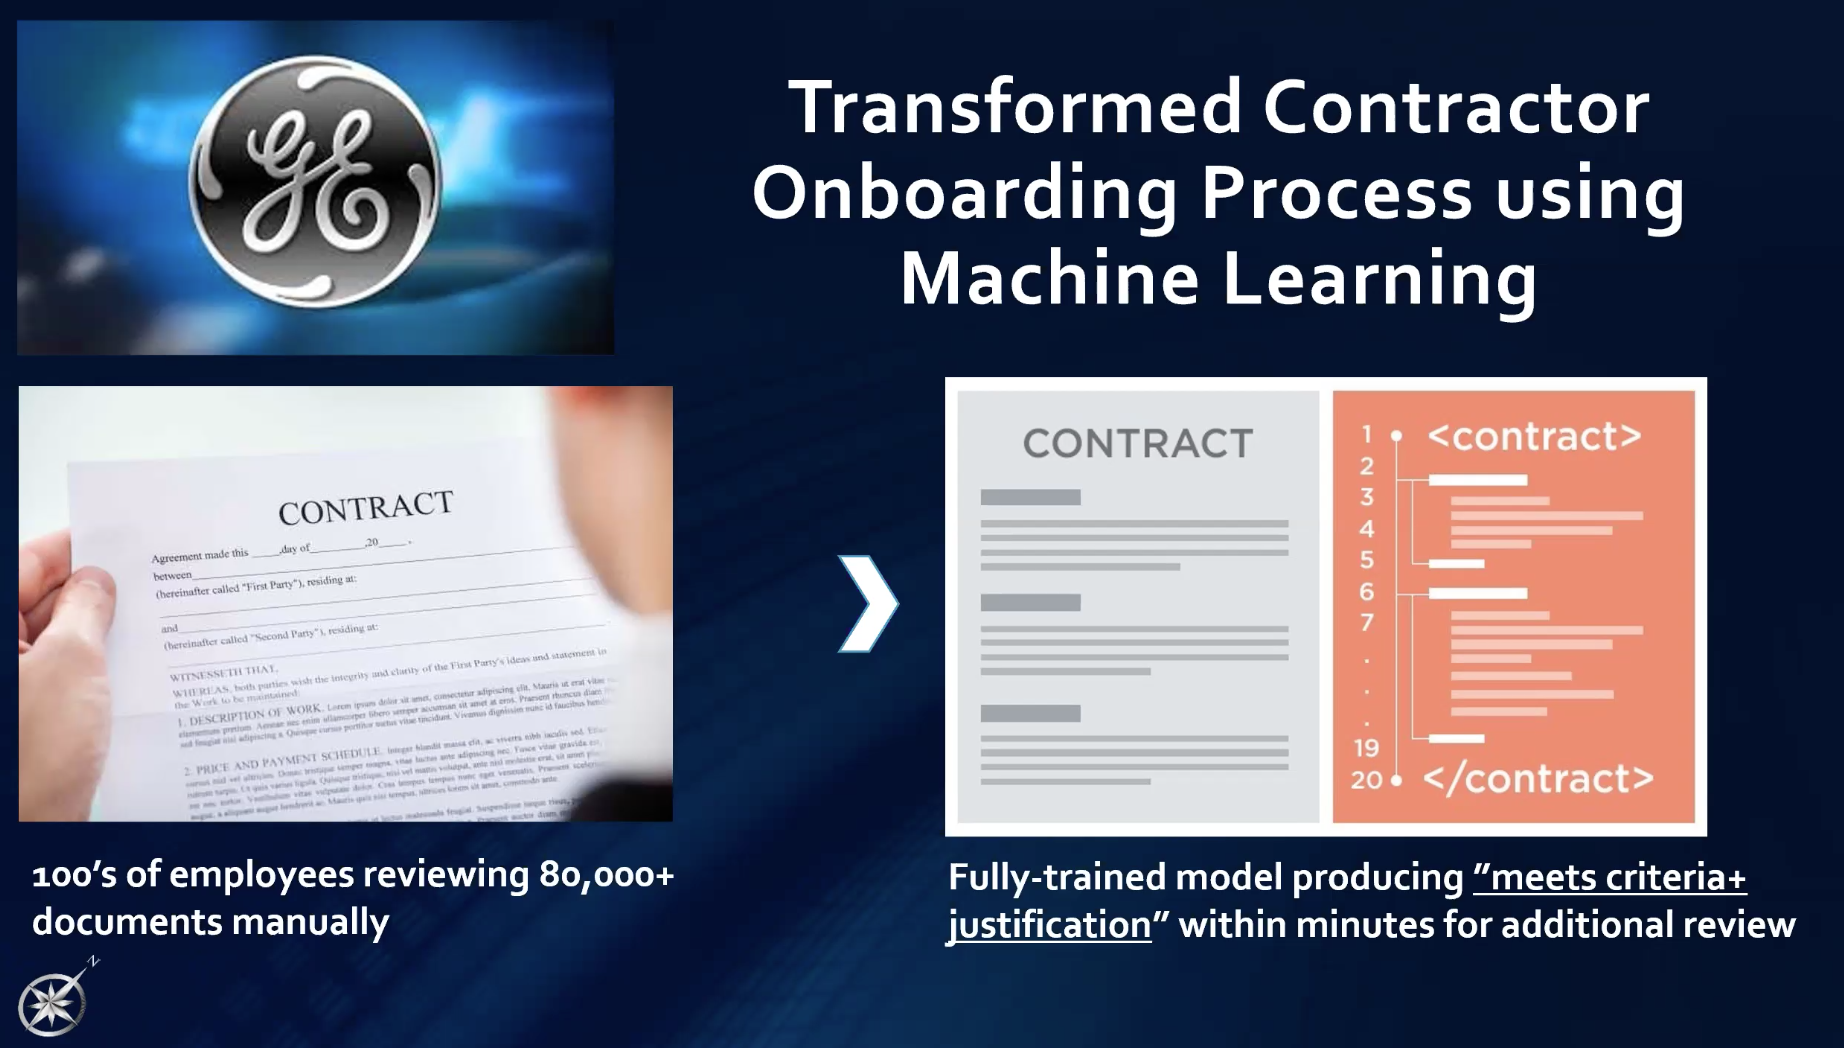 Image shows how Machine learning is being used in the onboarding process.